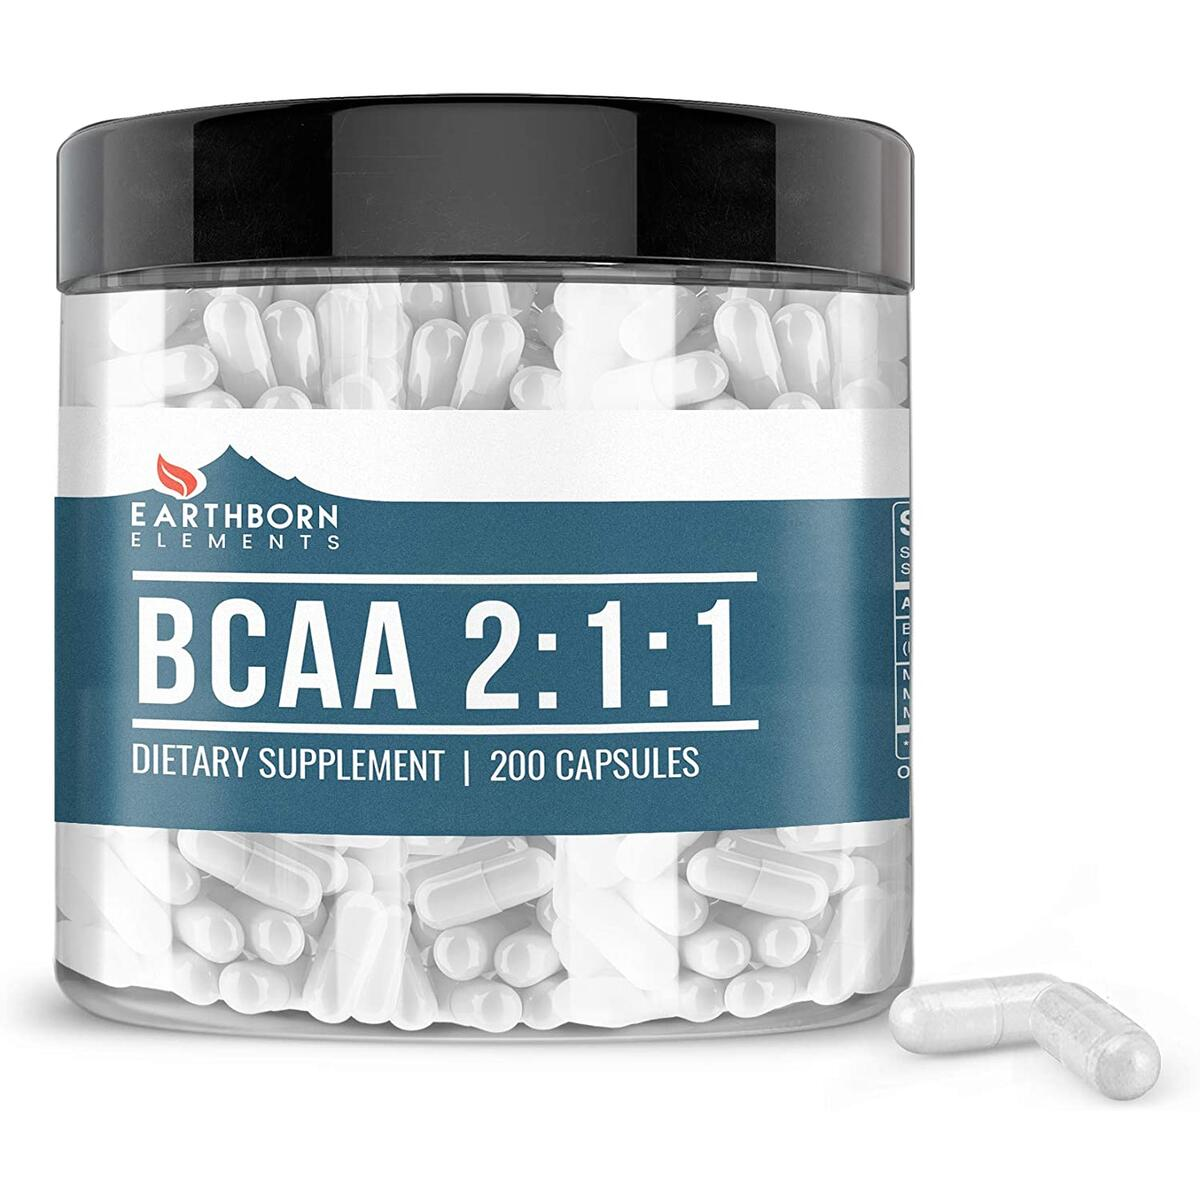 BCAA, 200 Capsules, 1200mg Serving, 2:1:1 Ratio, Naturally Sourced, No Magnesium or Rice Fillers, Non-GMO, Made in USA, Gluten-Free, Paleo & Keto Friendly, Lab-Tested, Satisfaction Guaranteed